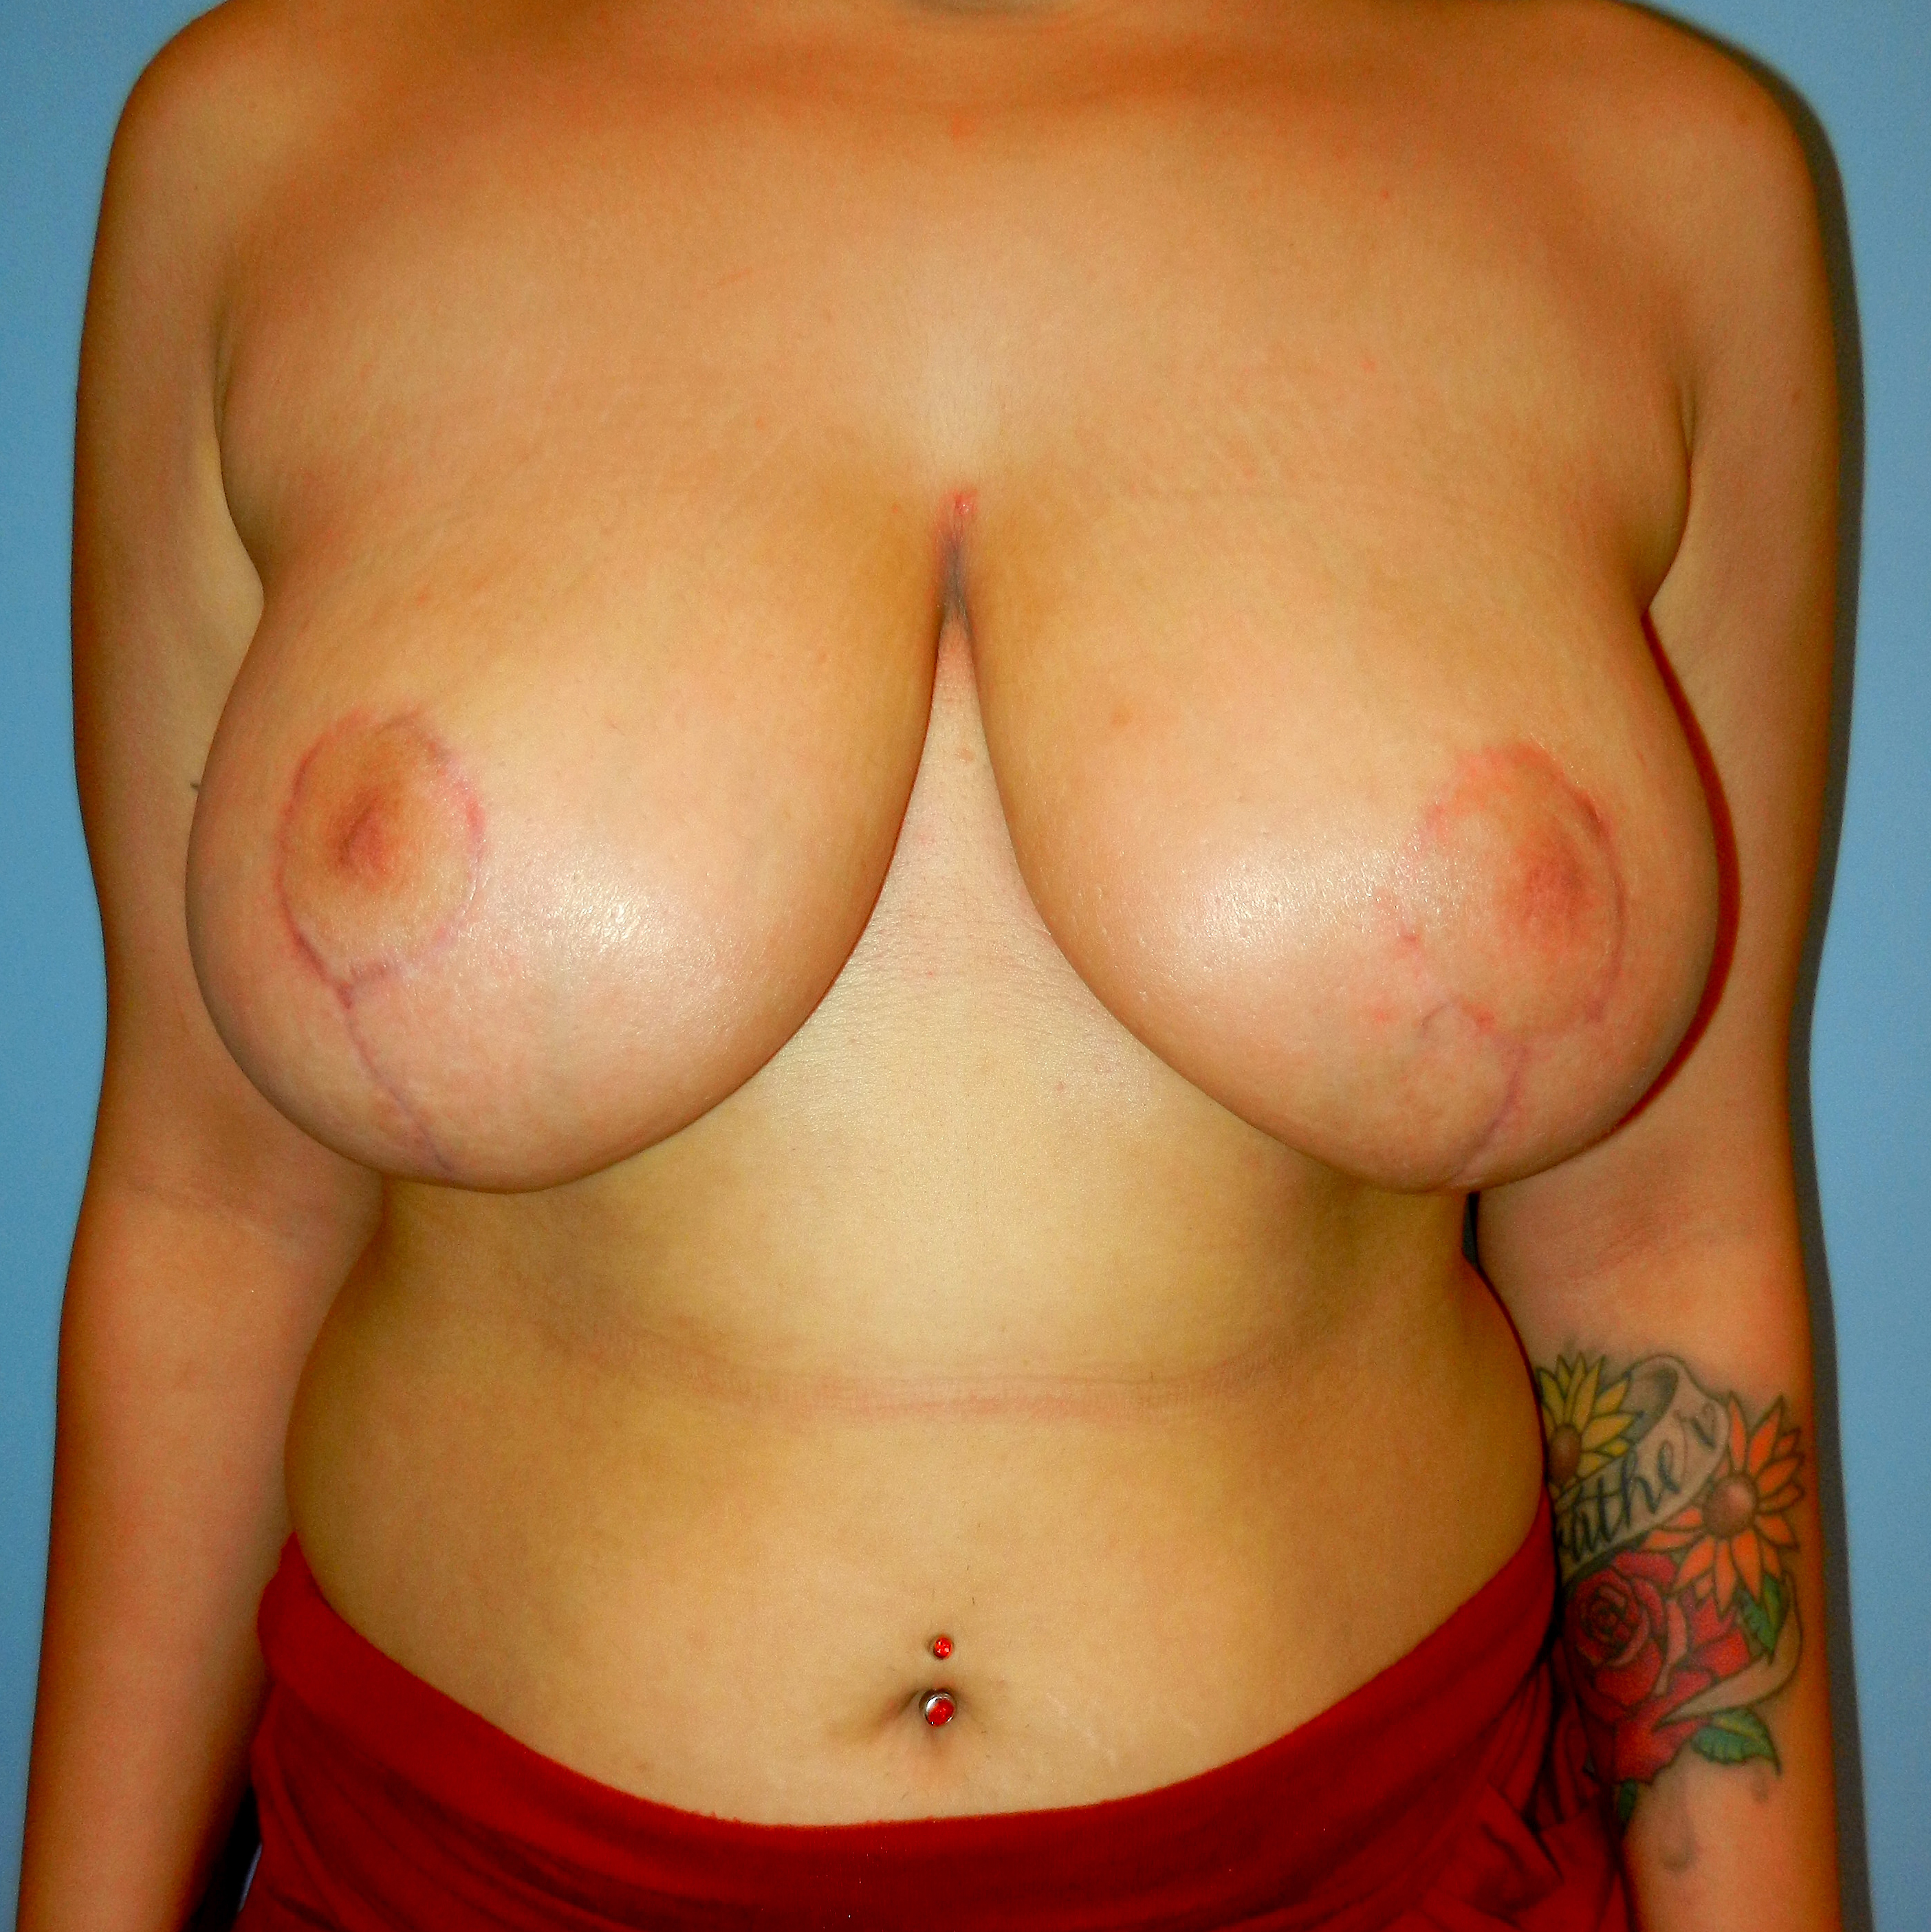 Breast Reduction 3 Months After Picture